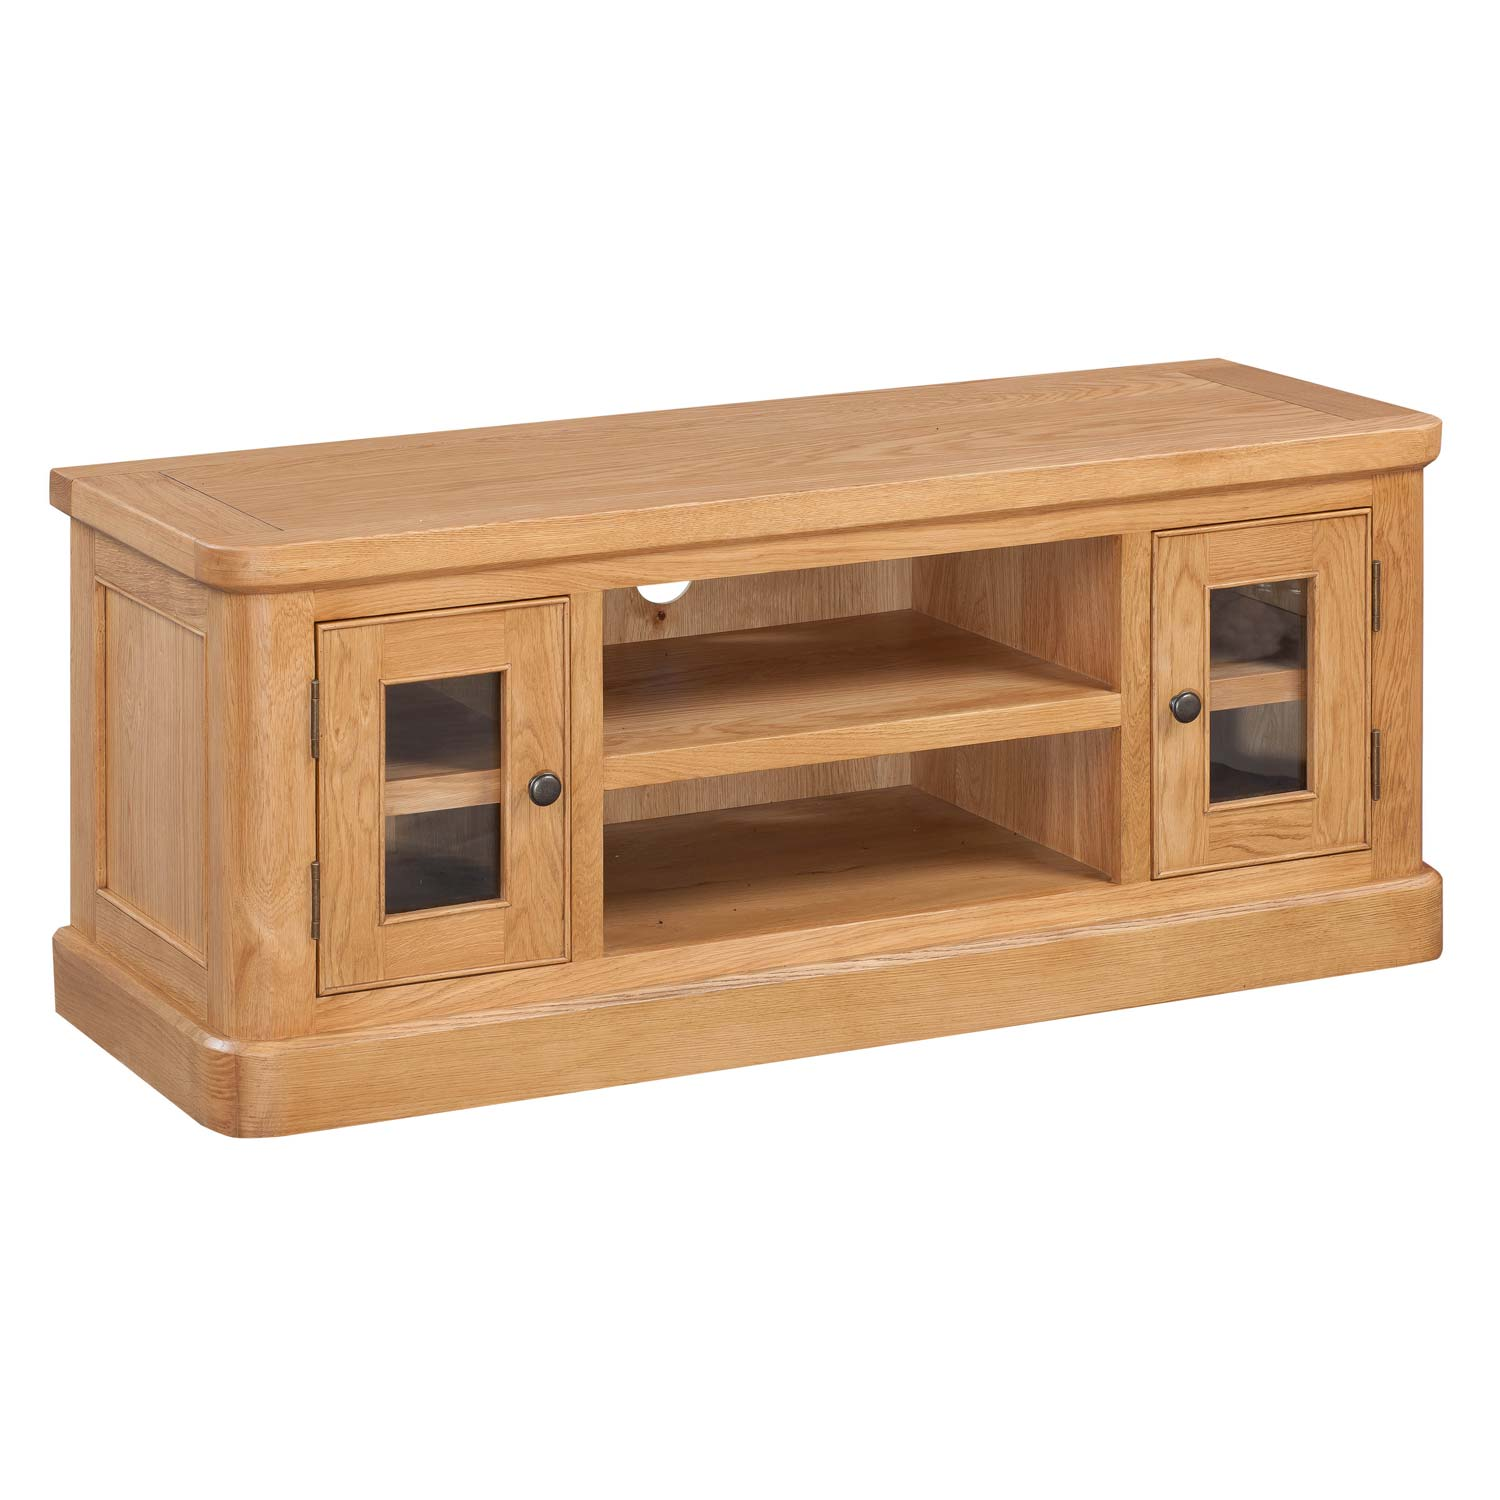 evesham oak large tv unit countryside pine and oak. Black Bedroom Furniture Sets. Home Design Ideas